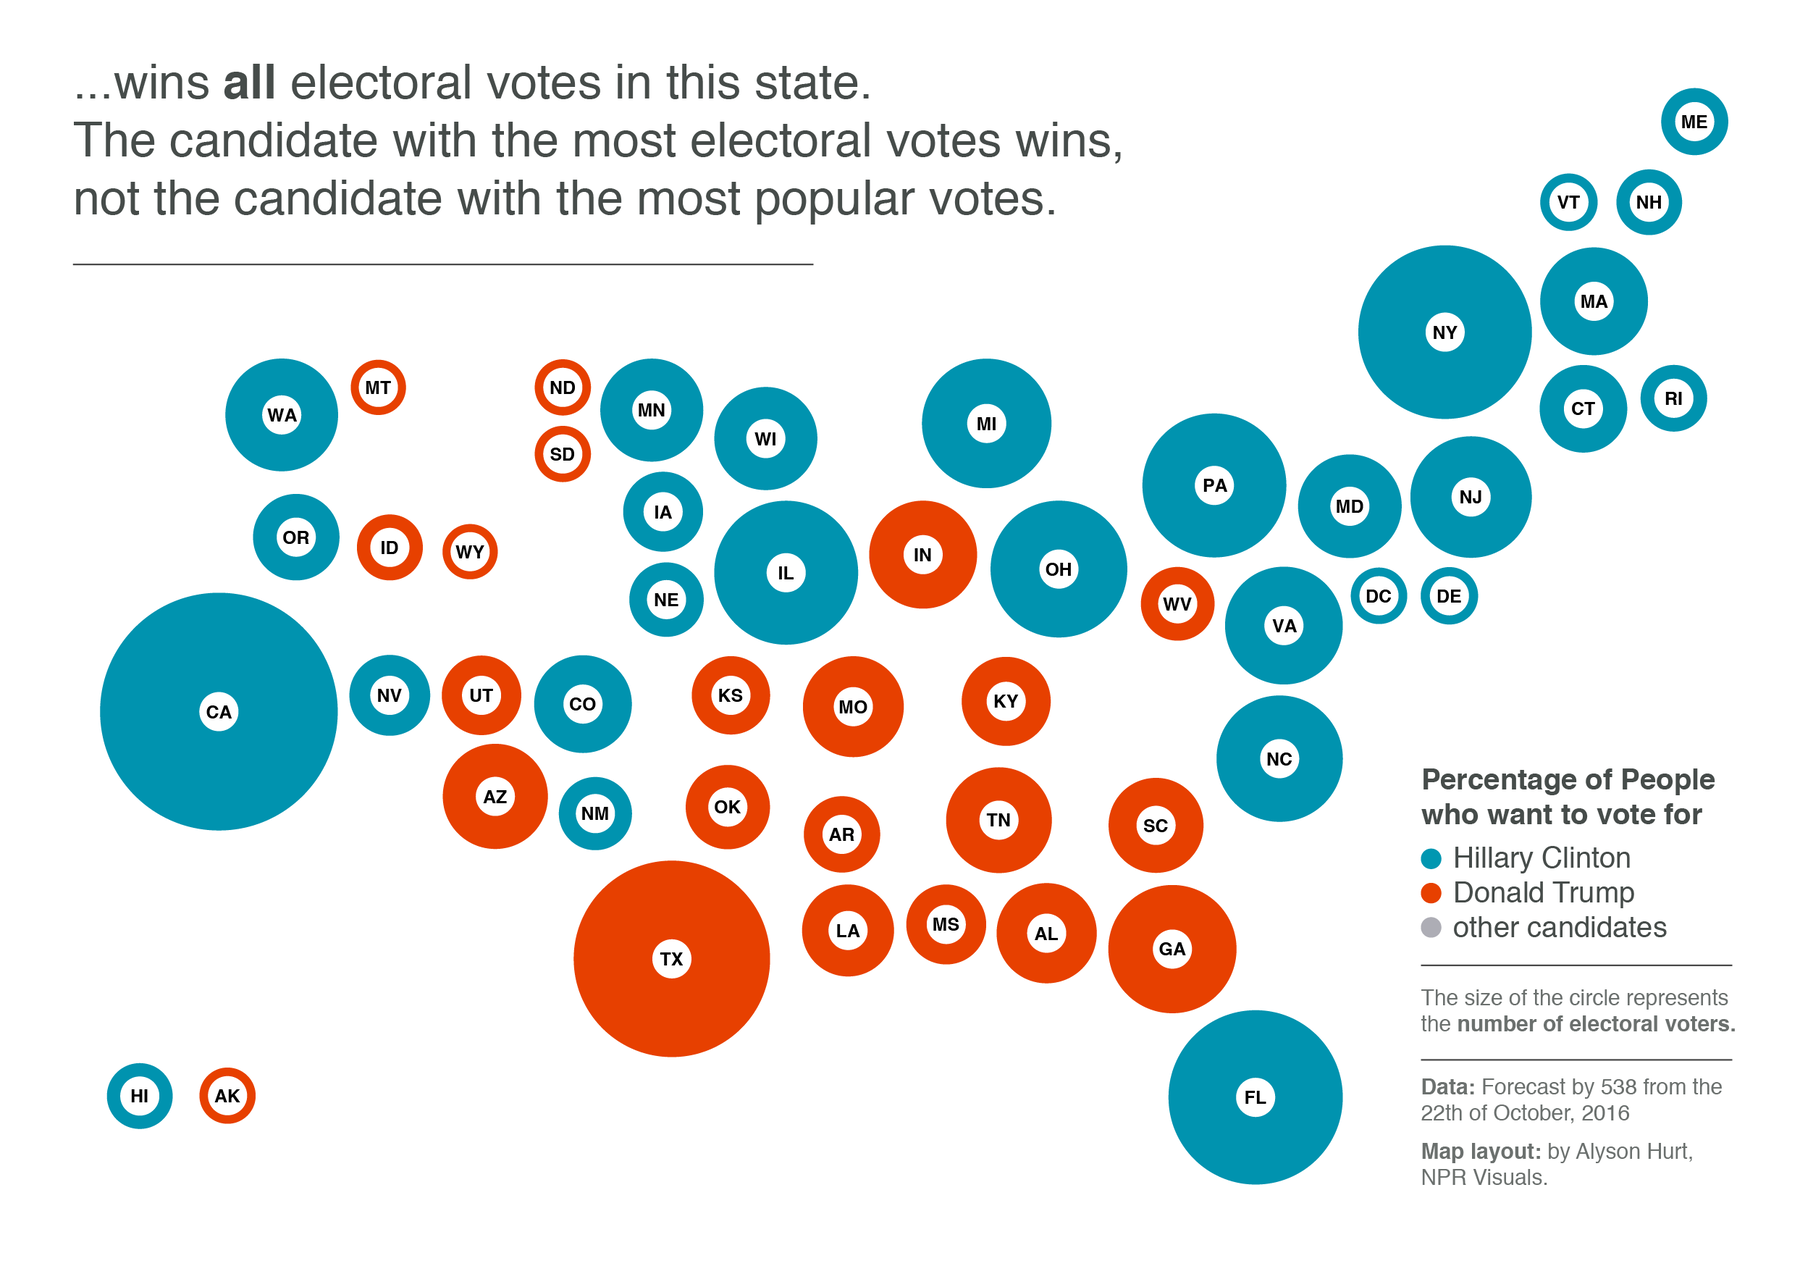 Making Election Maps Popular Again Lisa Charlotte Rost